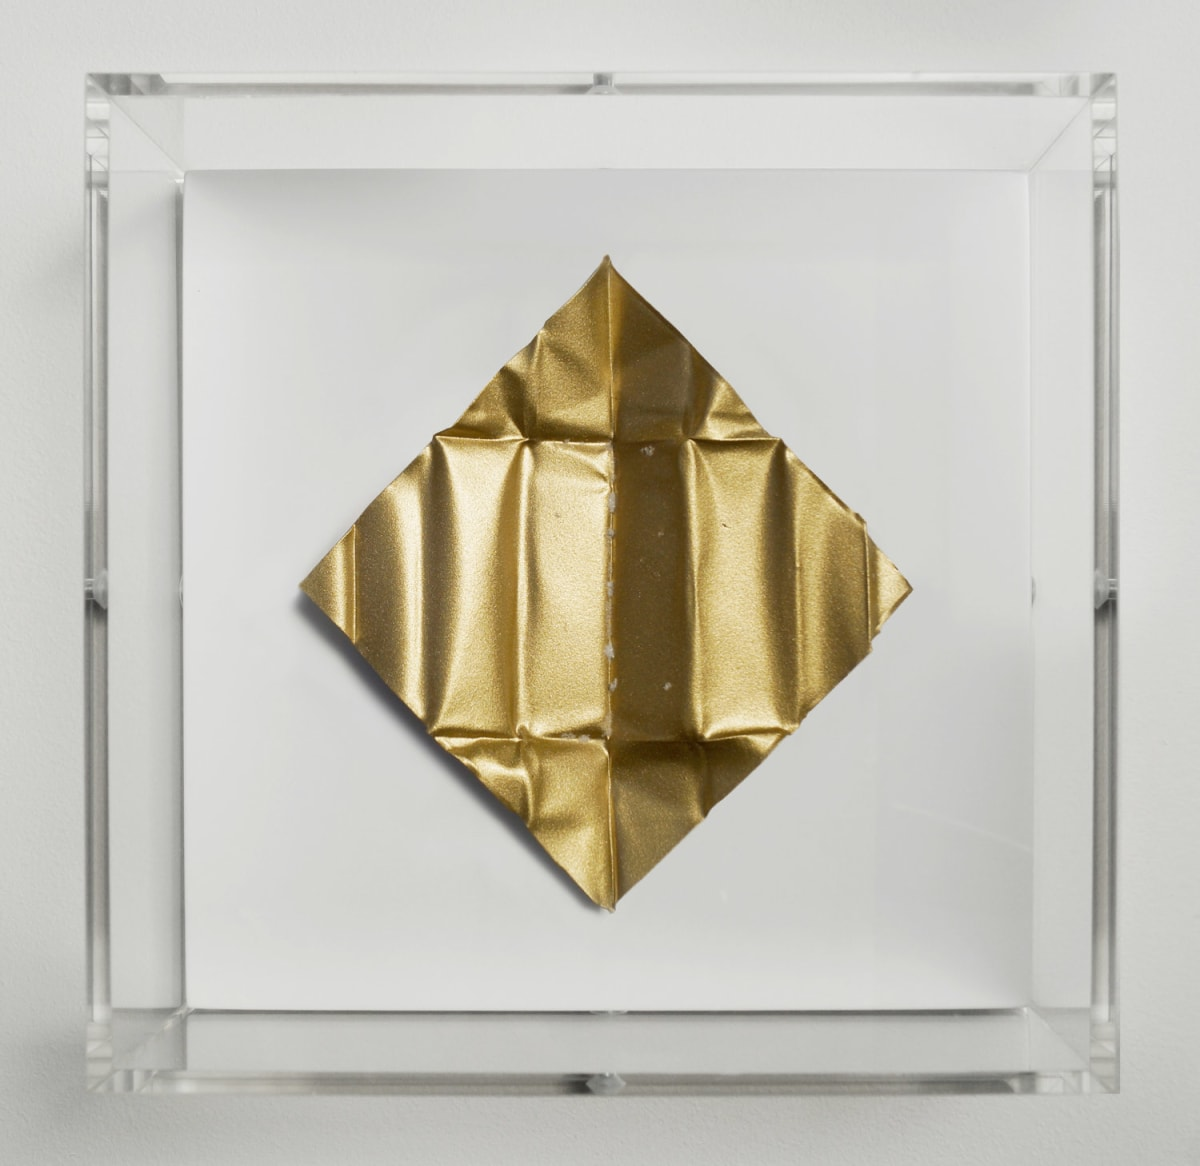 Mat Collishaw The Release - Gold Dollar, 2018 Diamond dust, folded aluminium, wood, acrylic, paint FRAMED 18.5 x 18.5 x 6.5 cm Edition of 10 Signed and numbered